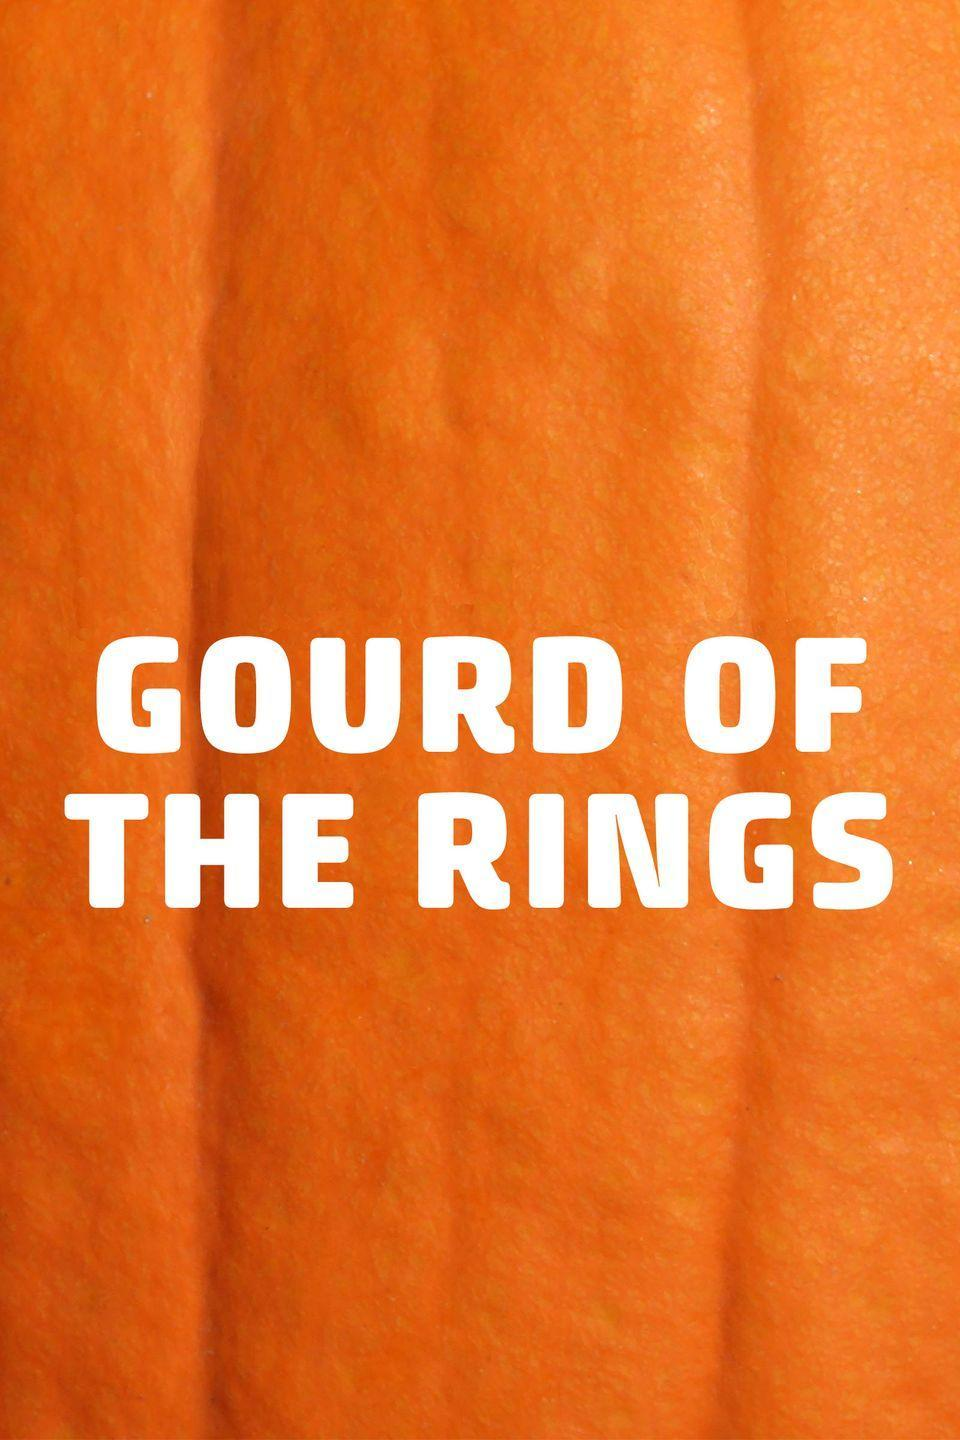 <p>Ringers, this pumpkin pun is for you!</p>